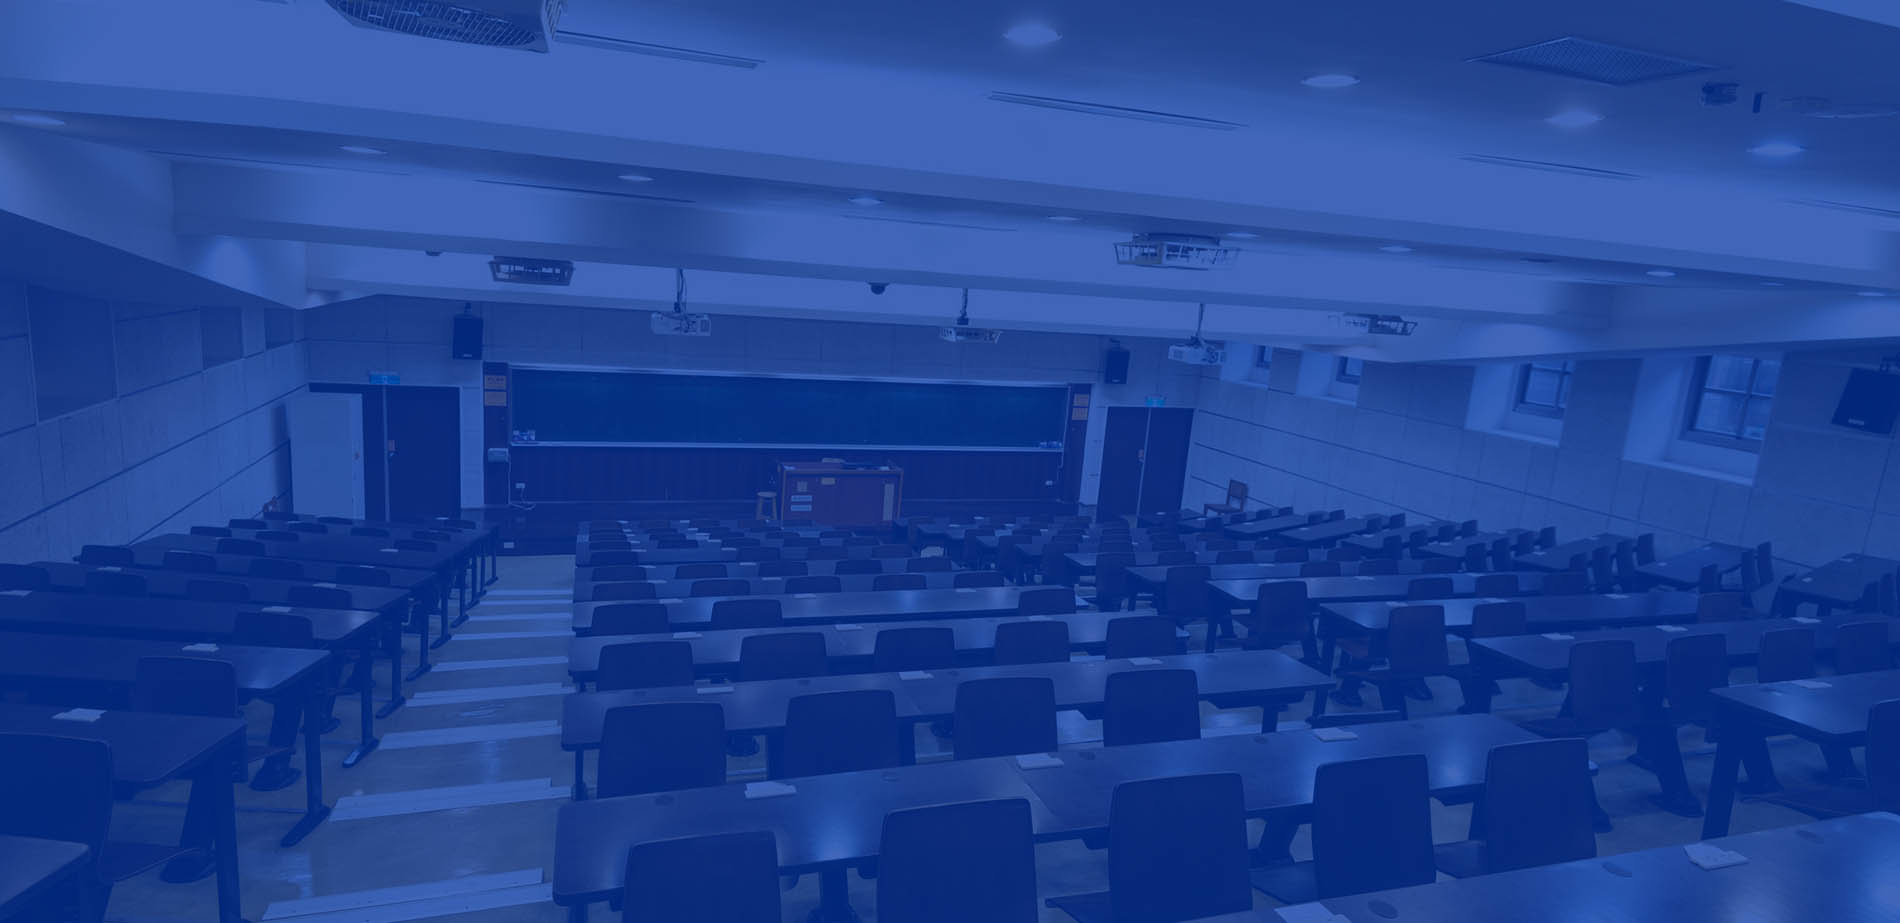 An empty large college classroom